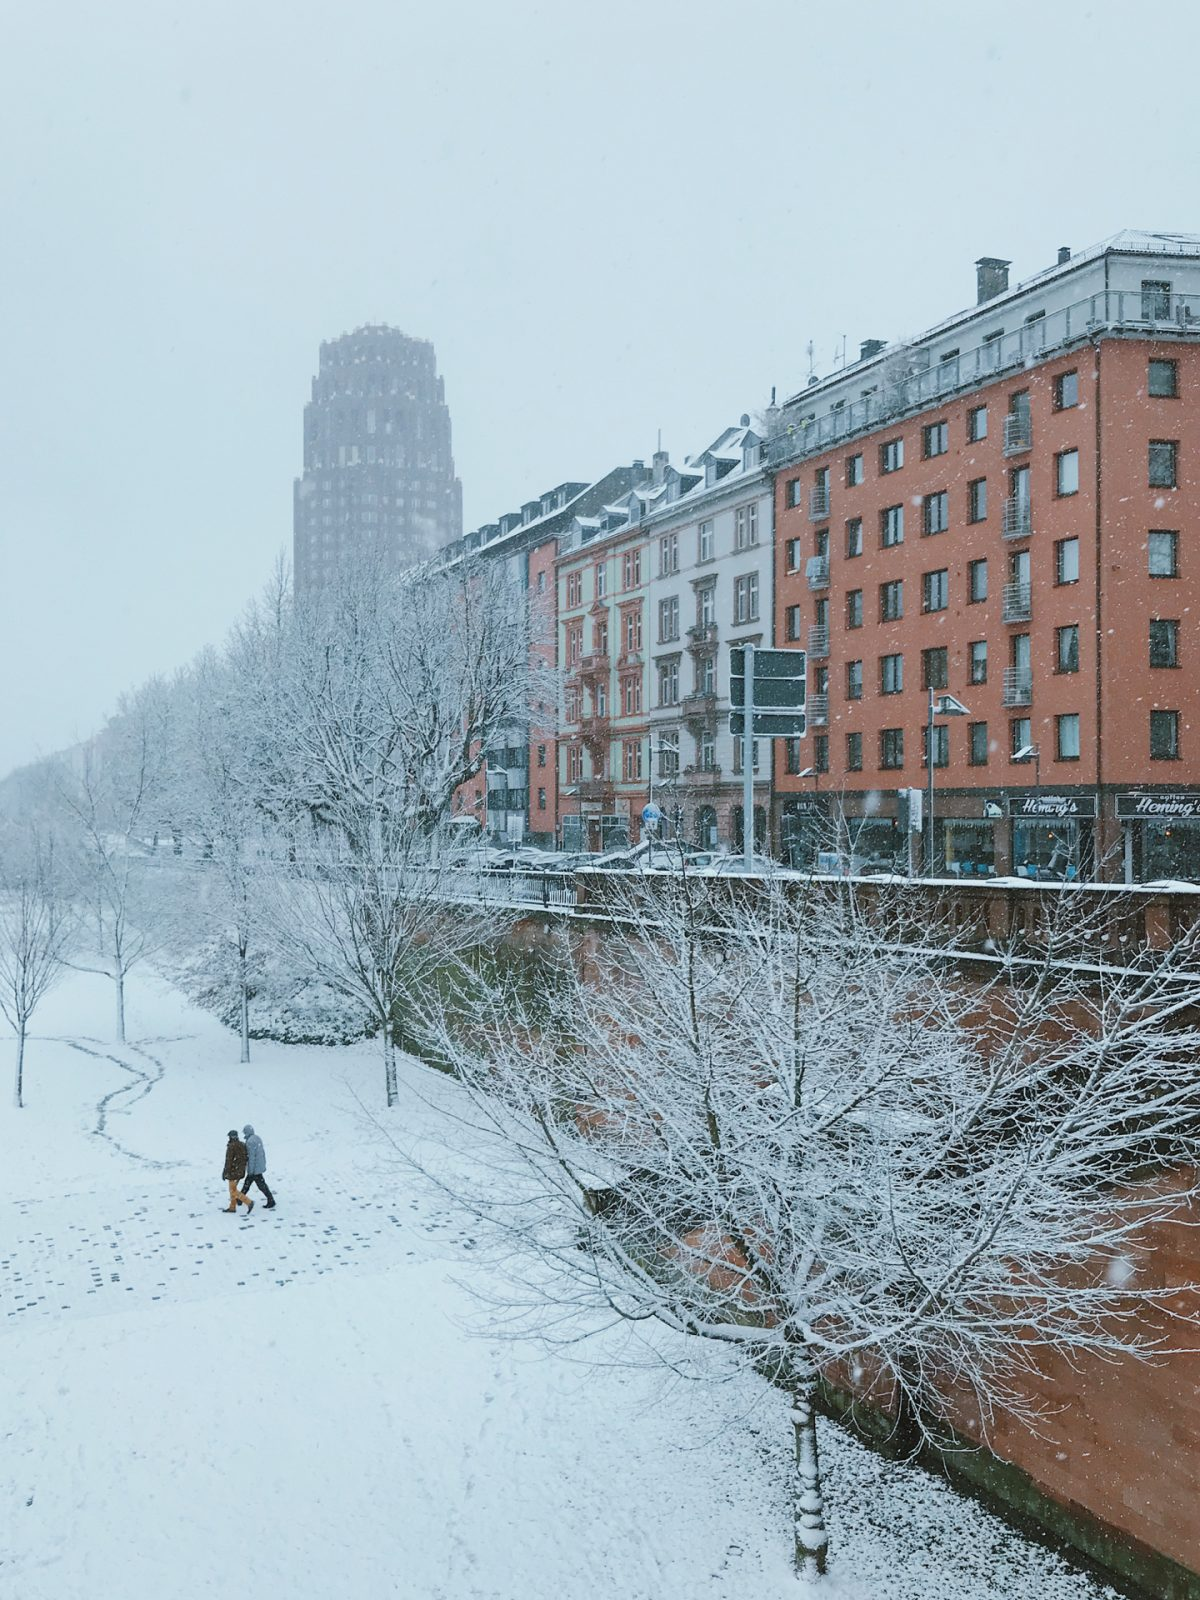 A city covered in white snow with snowflakes fallin